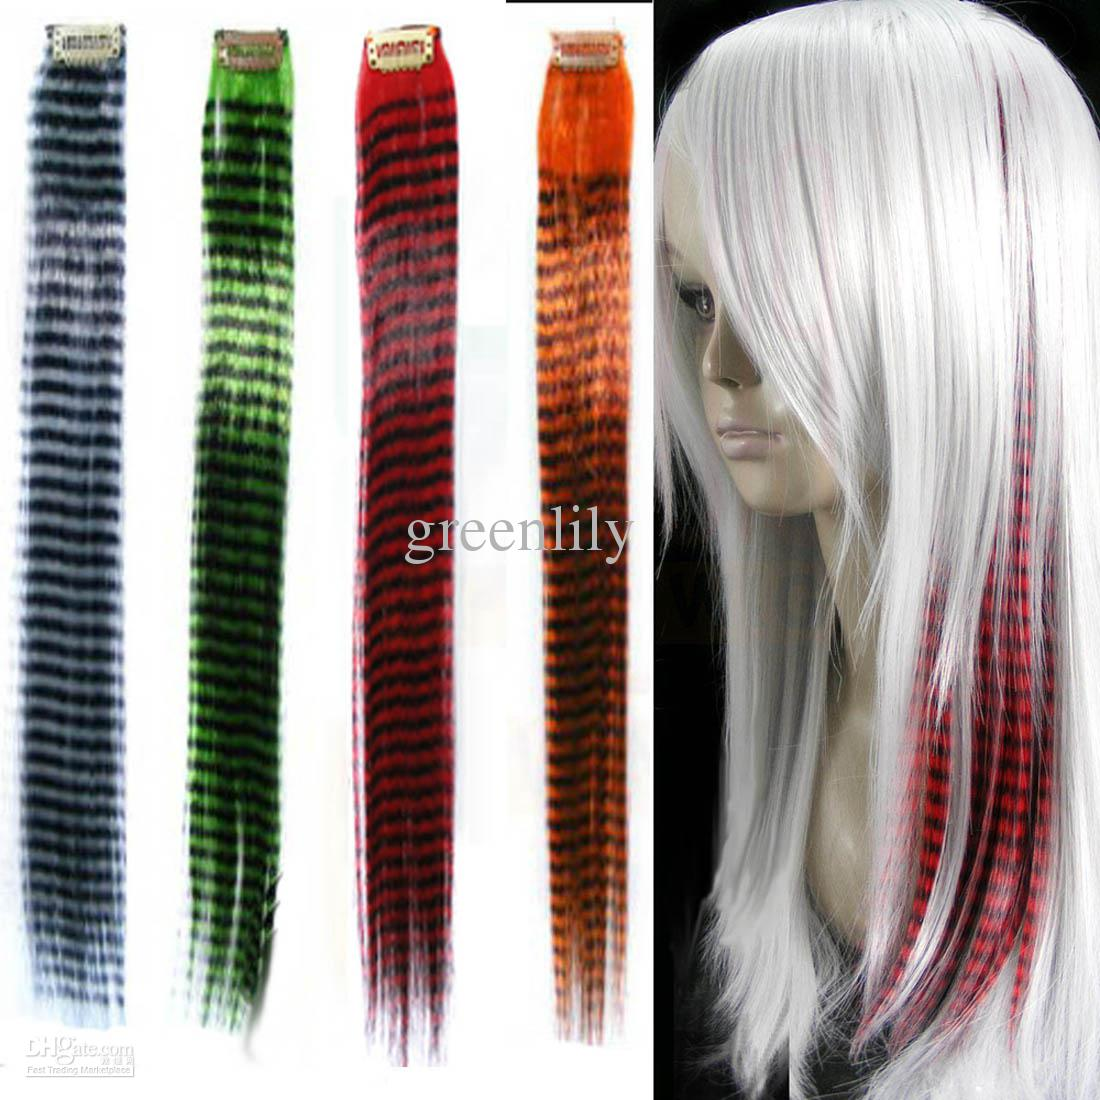 Clip on red hair extension grizzly strand synthetic 16 long 100pcs clip on red hair extension grizzly strand synthetic 16 long feather hair extensions mix lots pmusecretfo Images